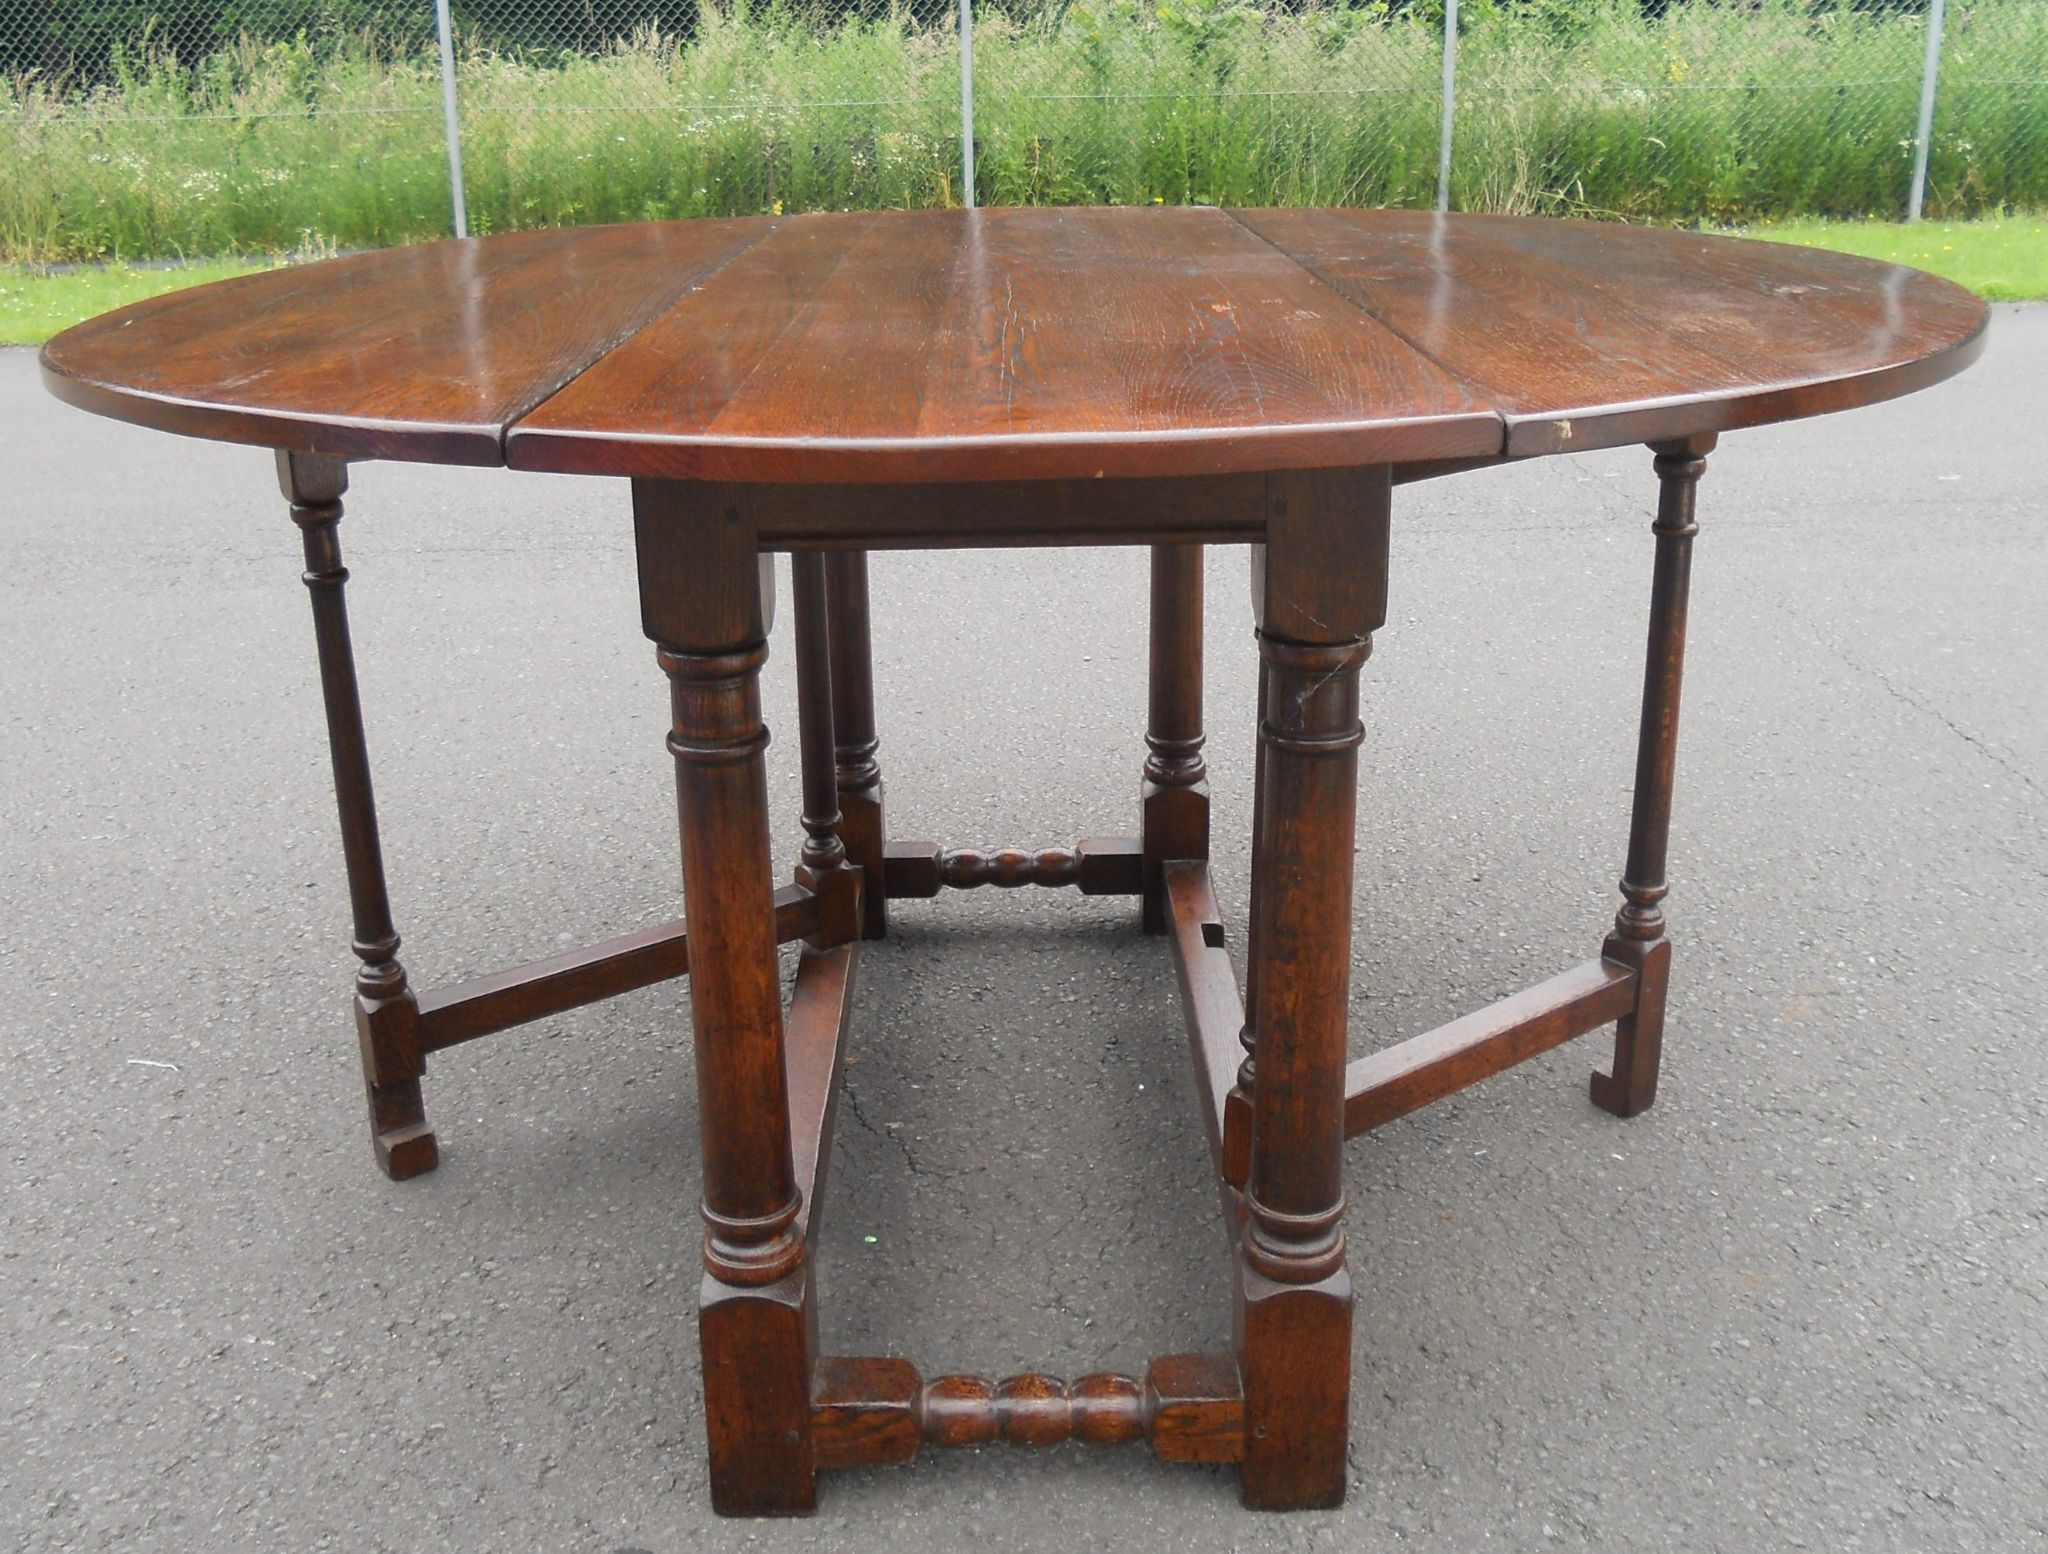 SOLD Large Oval Oak Gateleg Dining Table to Seat Six People : sold large oval oak gateleg dining table to seat six people 4 4783 p from www.harrisonantiquefurniture.co.uk size 2048 x 1554 jpeg 506kB